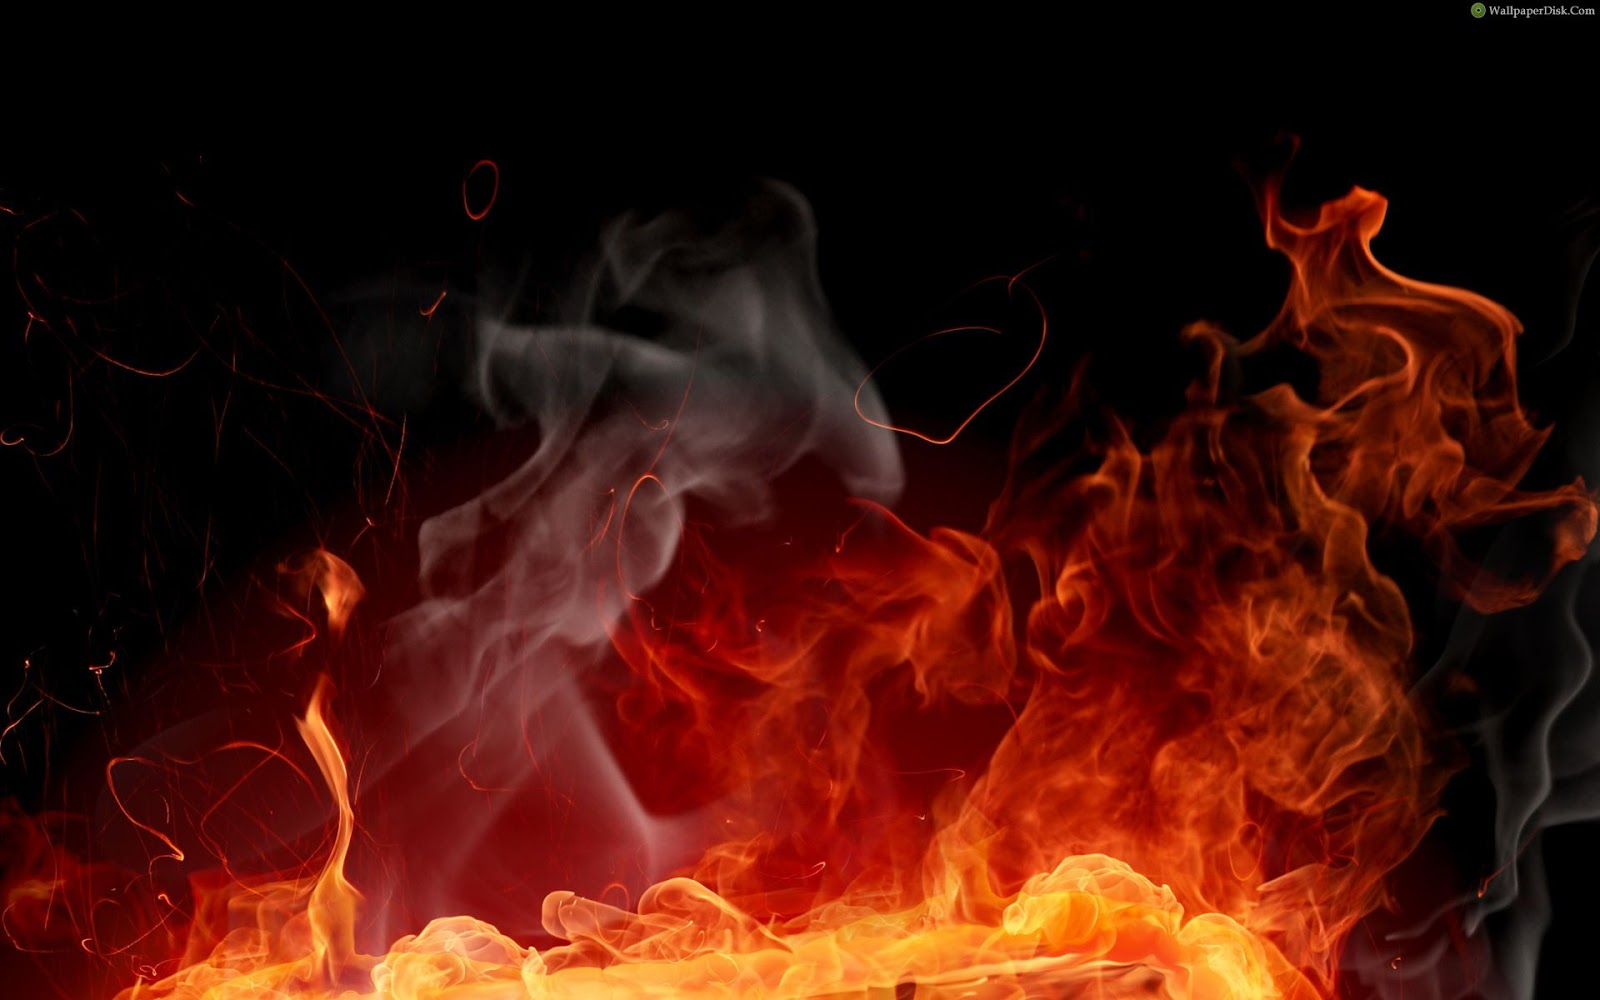 hd wallpapers desktop fire - photo #15